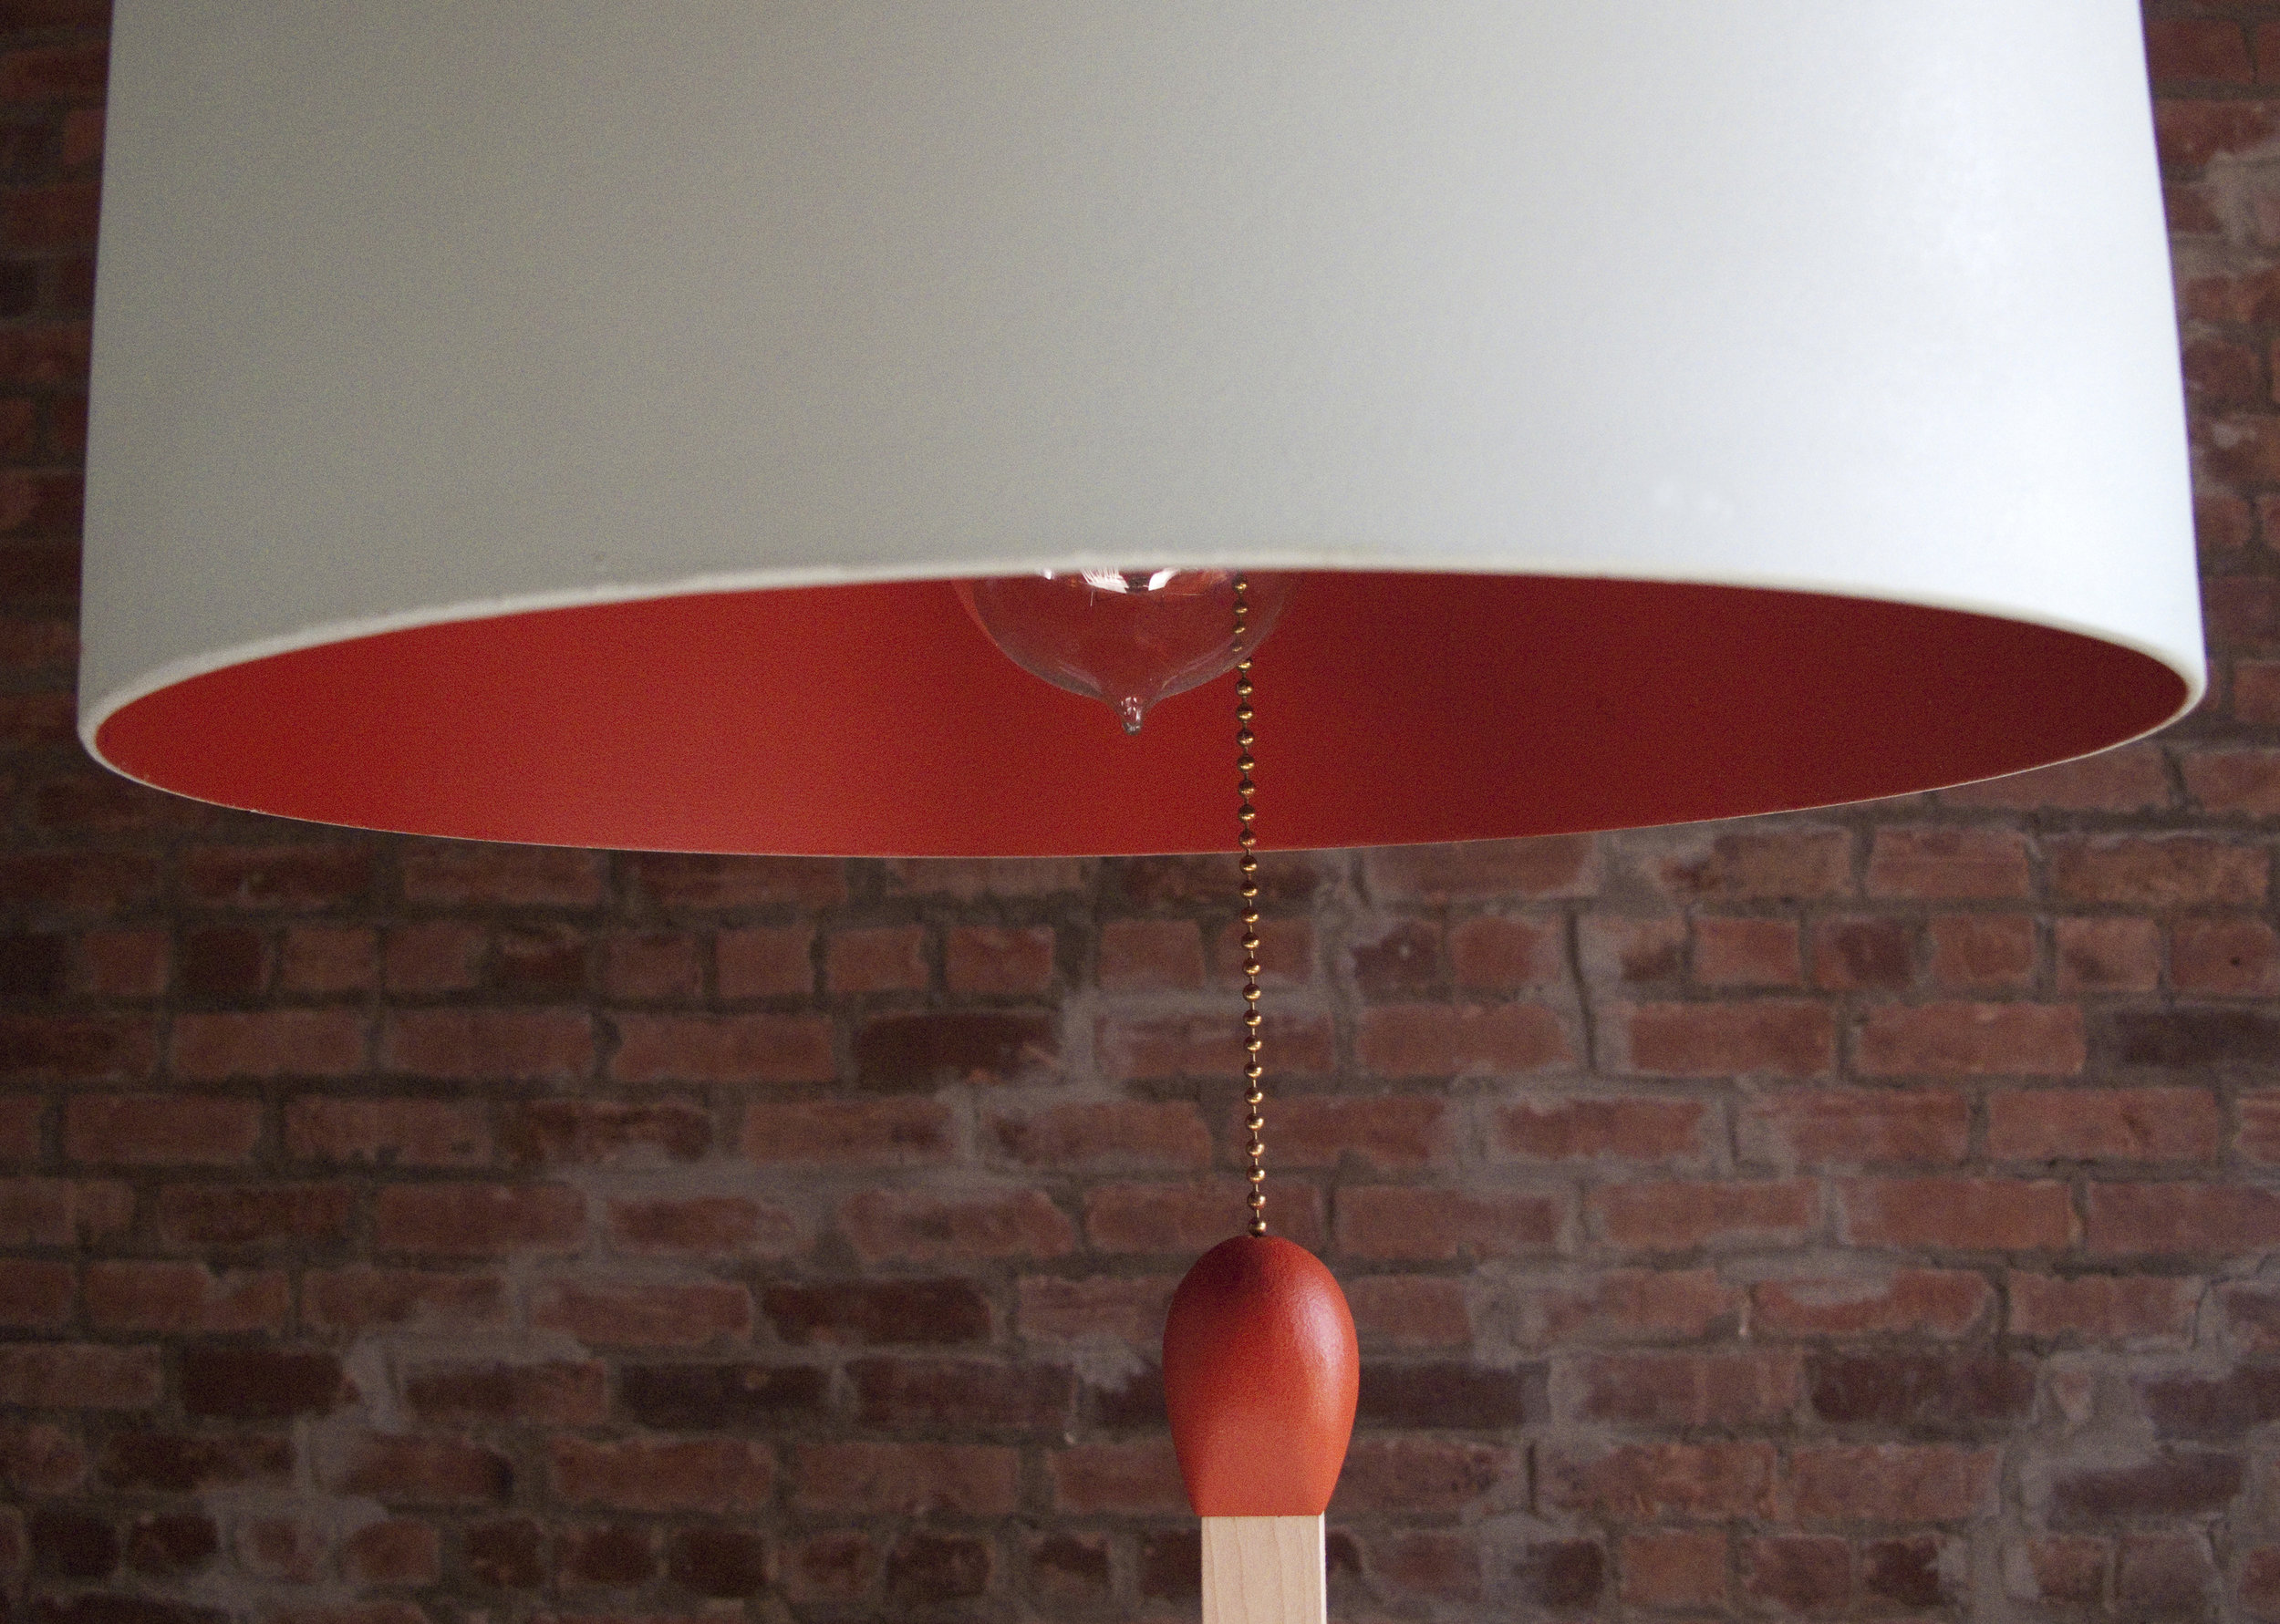 Lamp made from a gas tank. A match in giant format is suspended in the center. Exterior painted blue gray and interior finished red ocher.